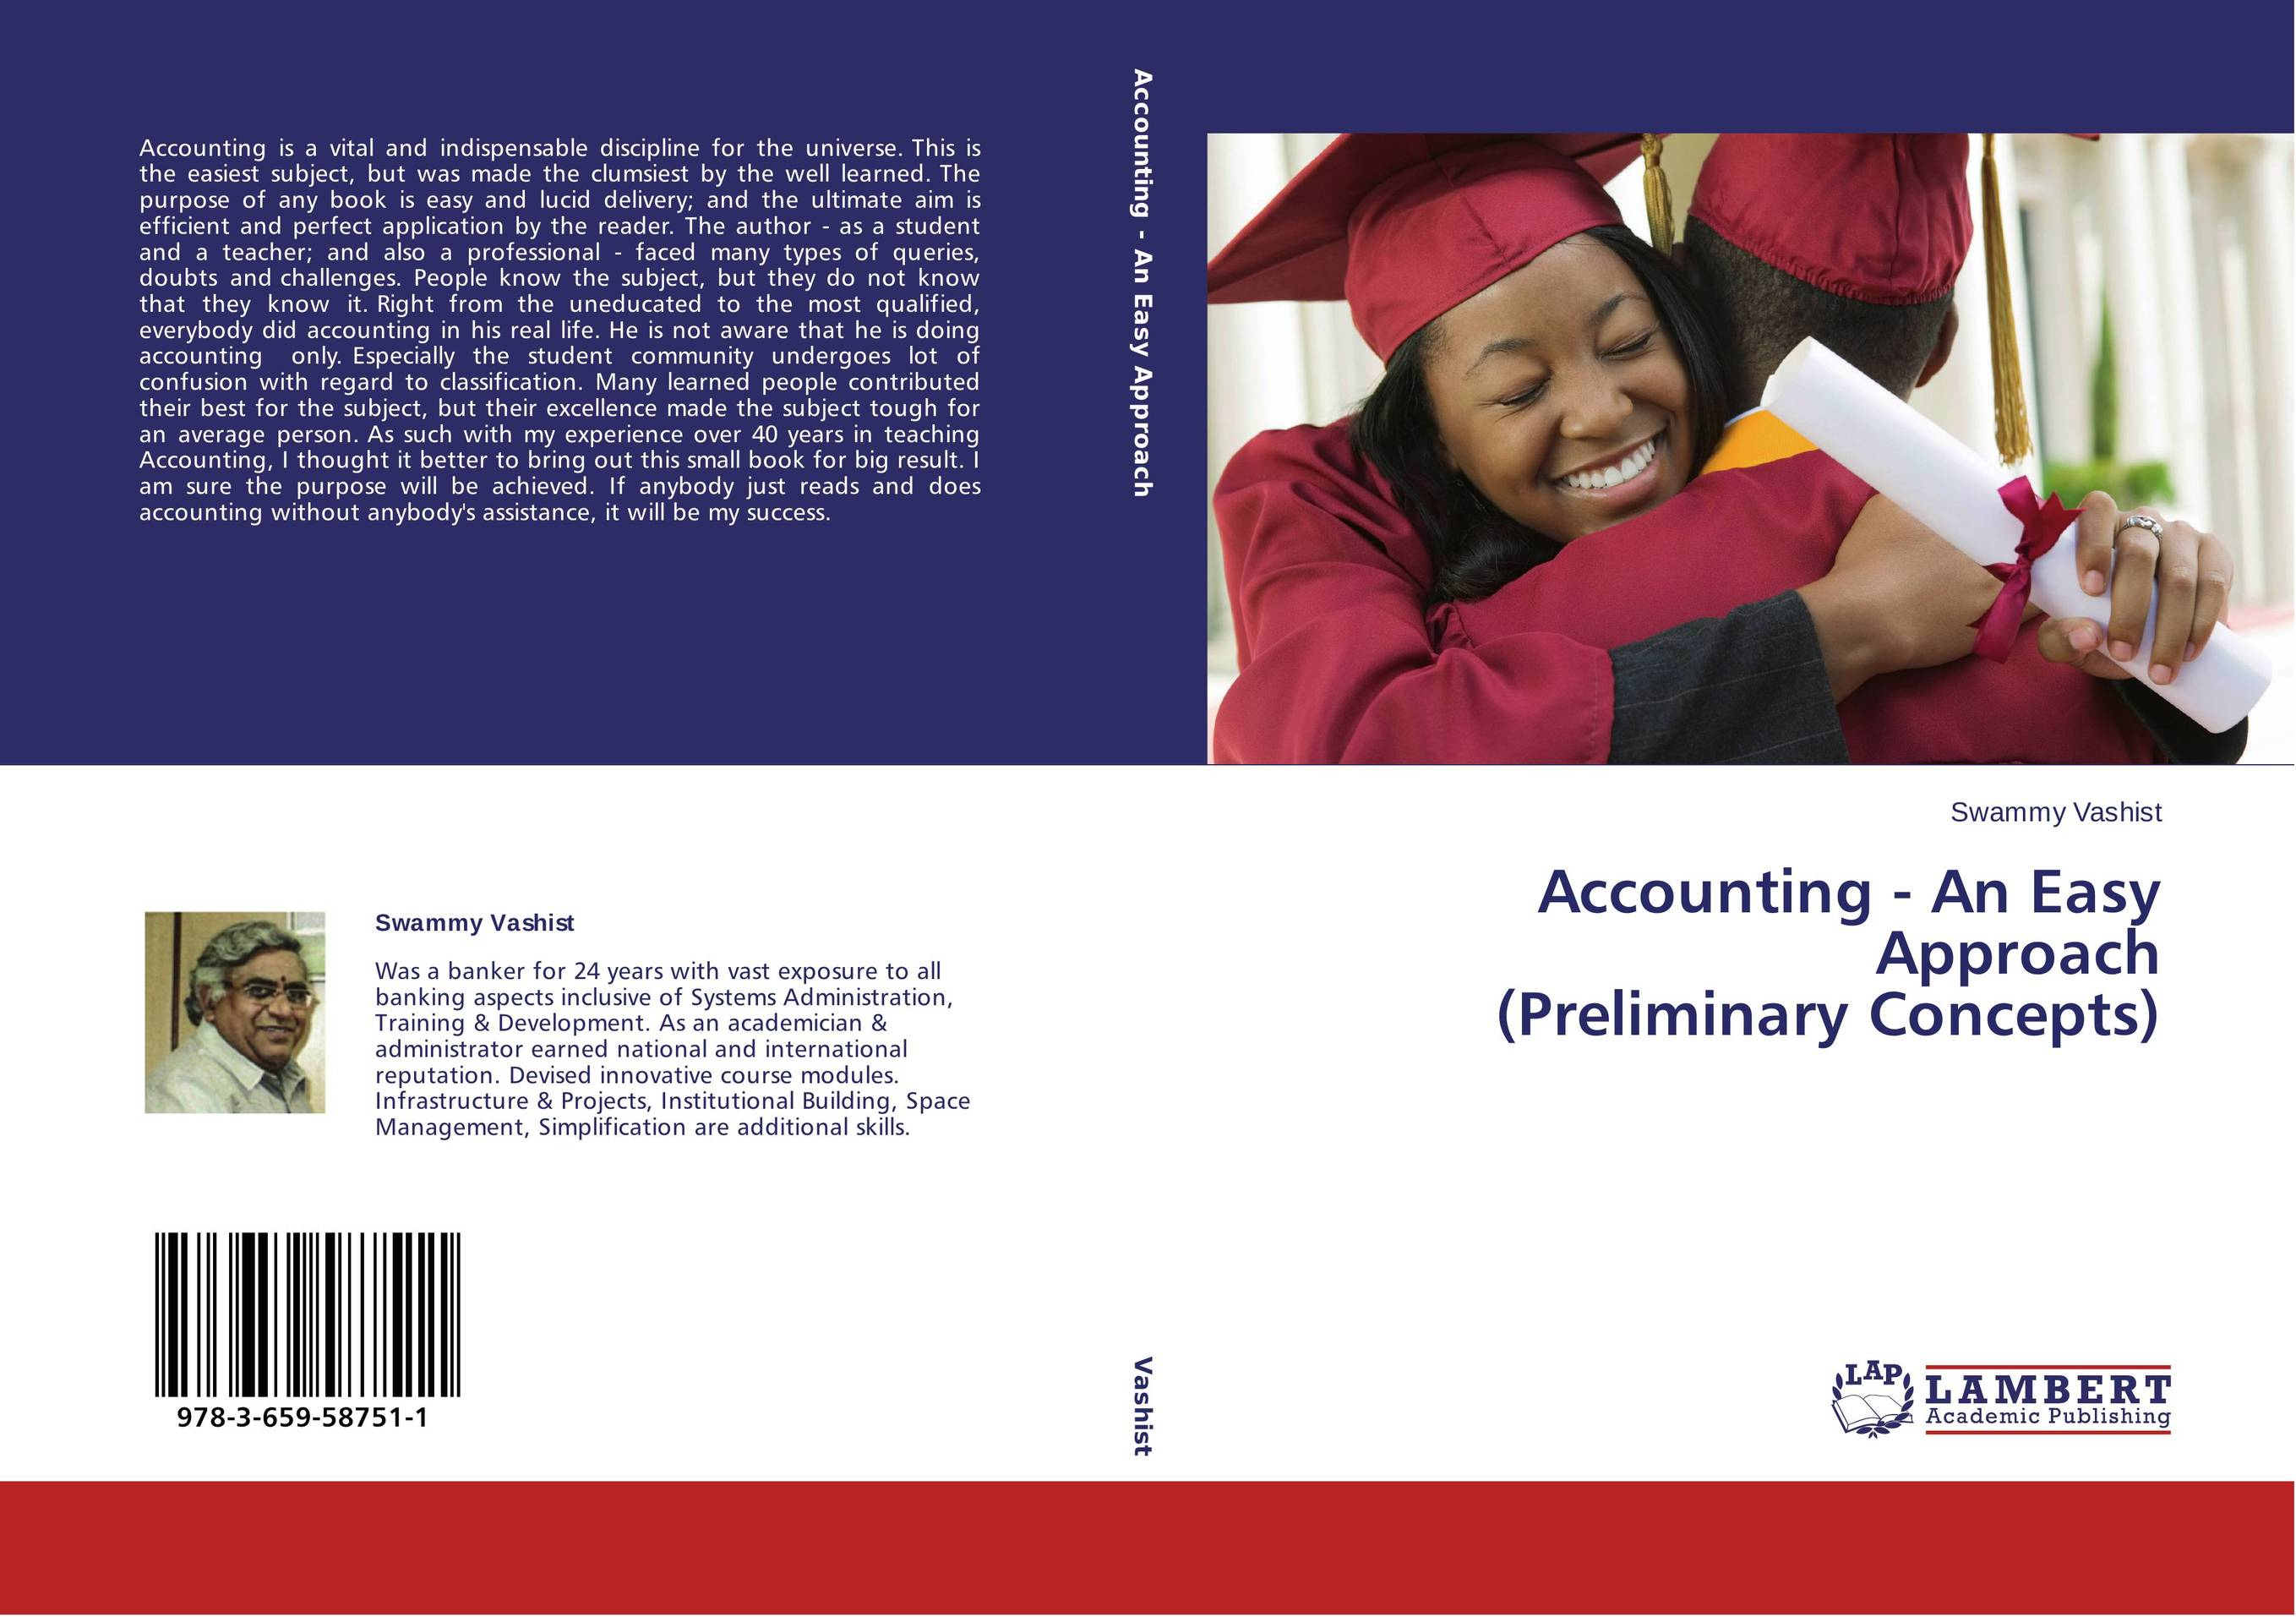 accounting as a discipline has no theory essay A concise explanation of accounting theory covering double-entry bookkeeping, debits, credits the assets of a business are those things that belong to the business that have a positive financial value each entry is referred to as an entry and the practice of maintaining these entries in the accounts is.